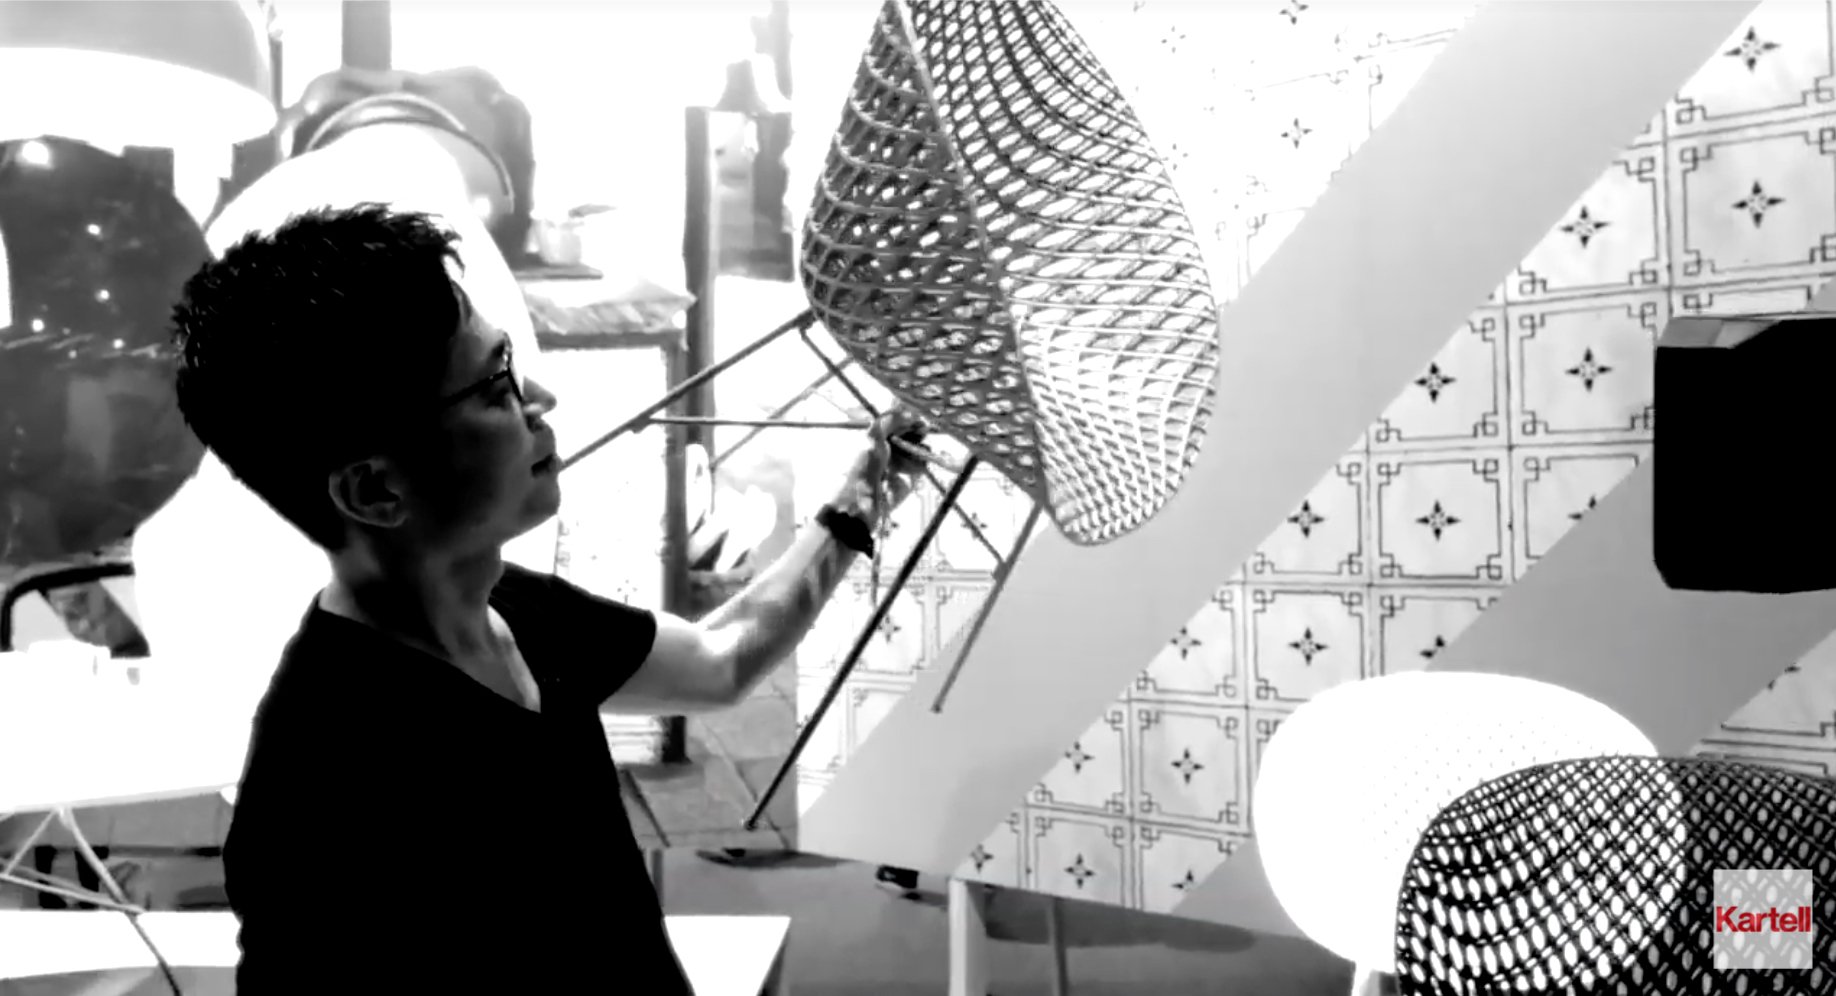 Designer Tokujin Yoshioka worked closely with Kartell's research and development team to develop the complex mould required for the Smatrik collection. Film footage c/o Kartell.